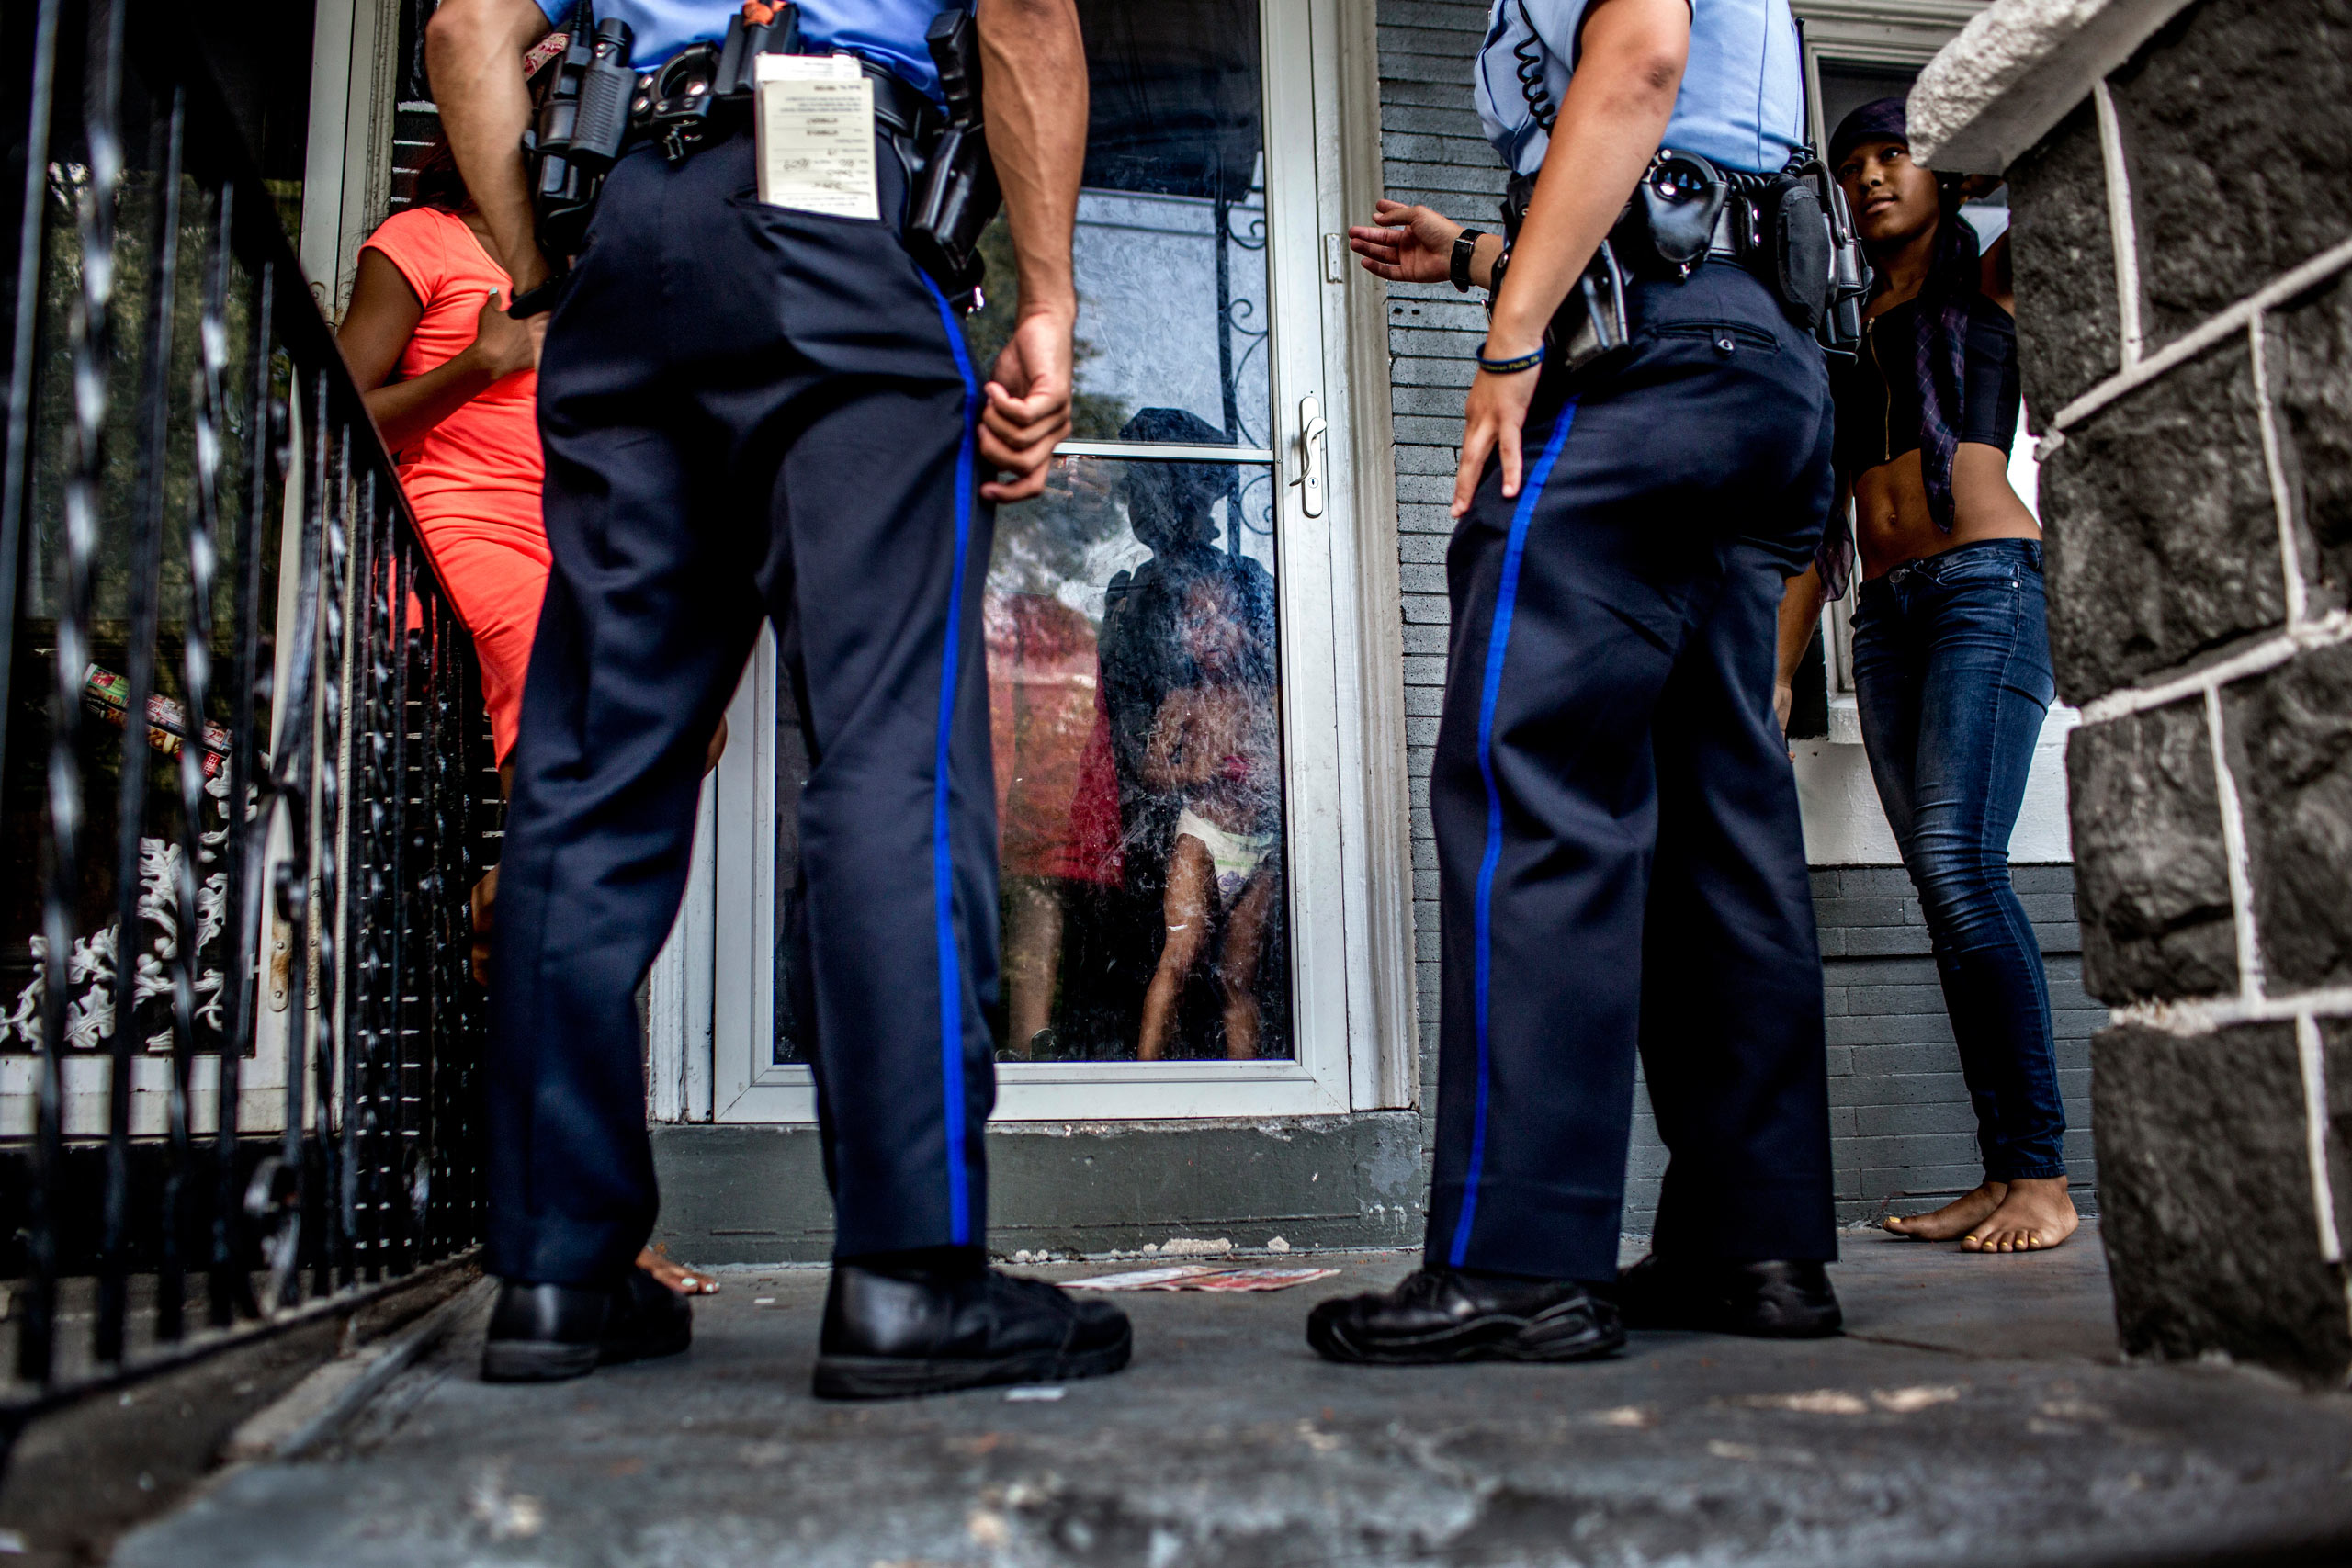 Officers respond to a call regarding a young woman being threatened by an ex boyfriend. After asking a series of questions, the police filed a domestic report. July 29, 2015. Philadelphia, Pa.